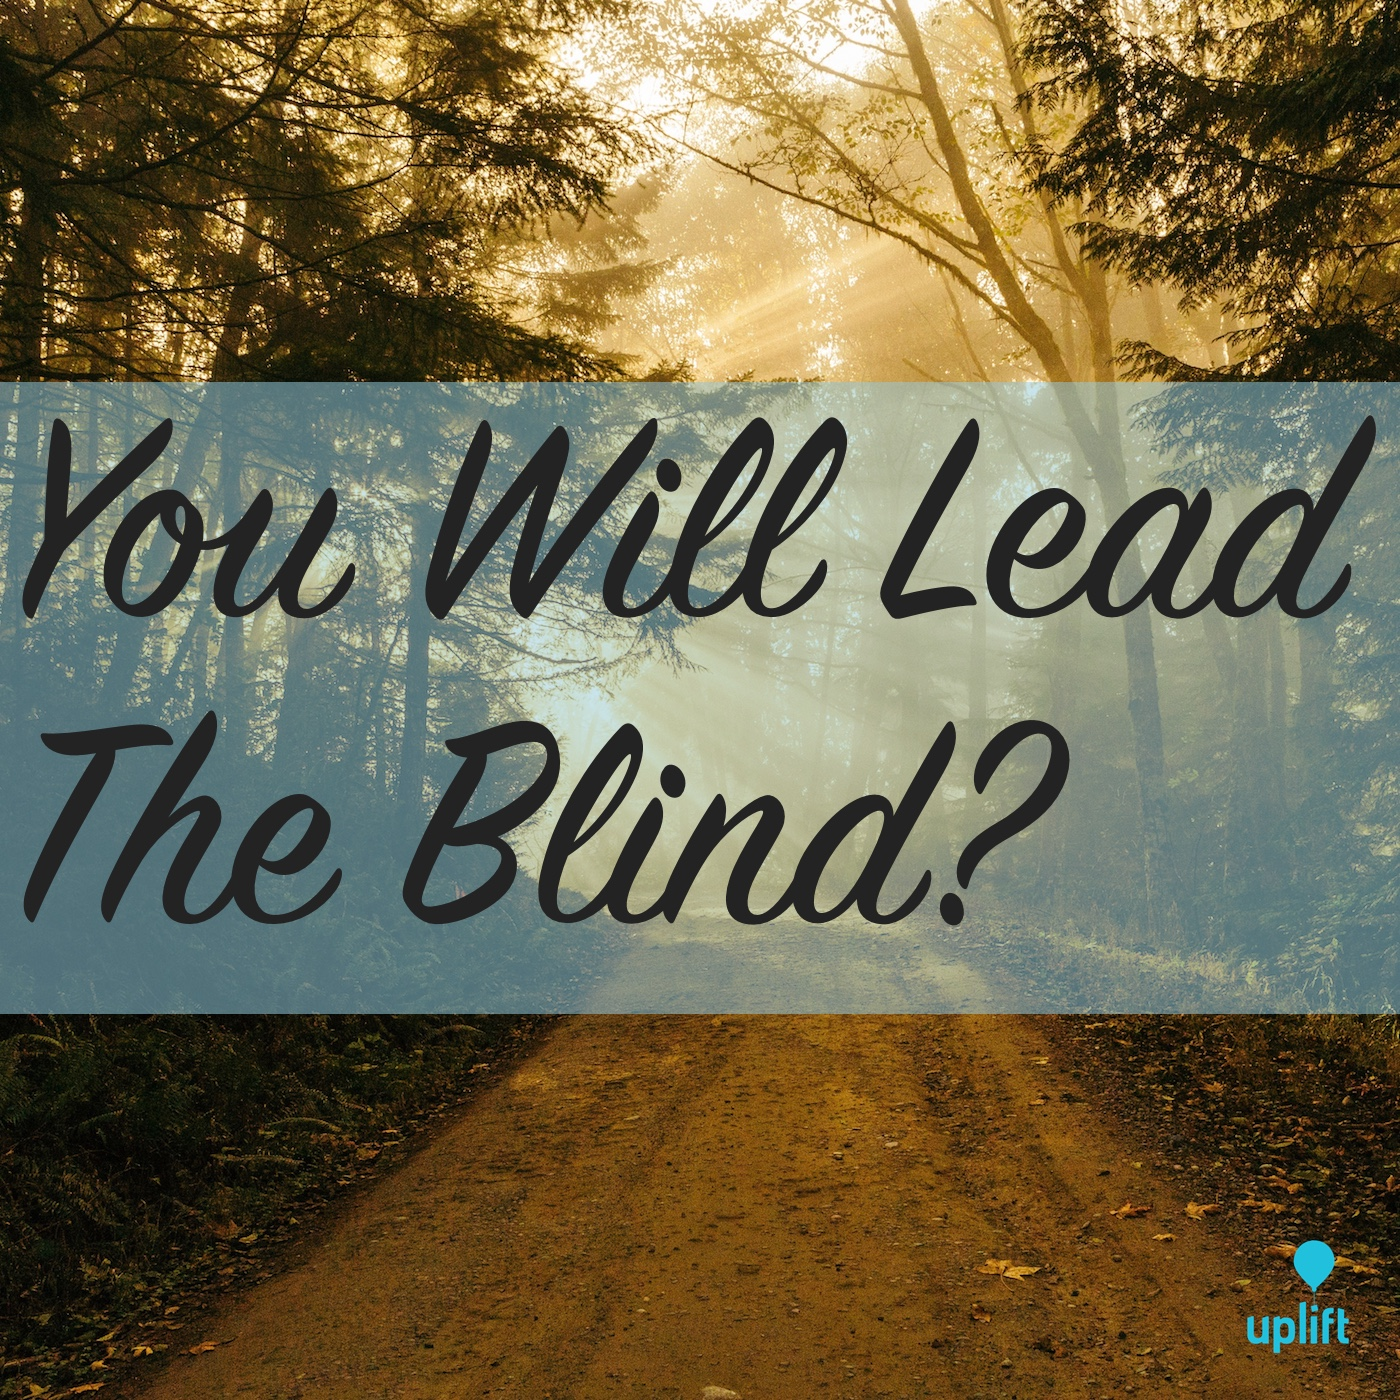 Episode 13: You Will Lead The Blind?